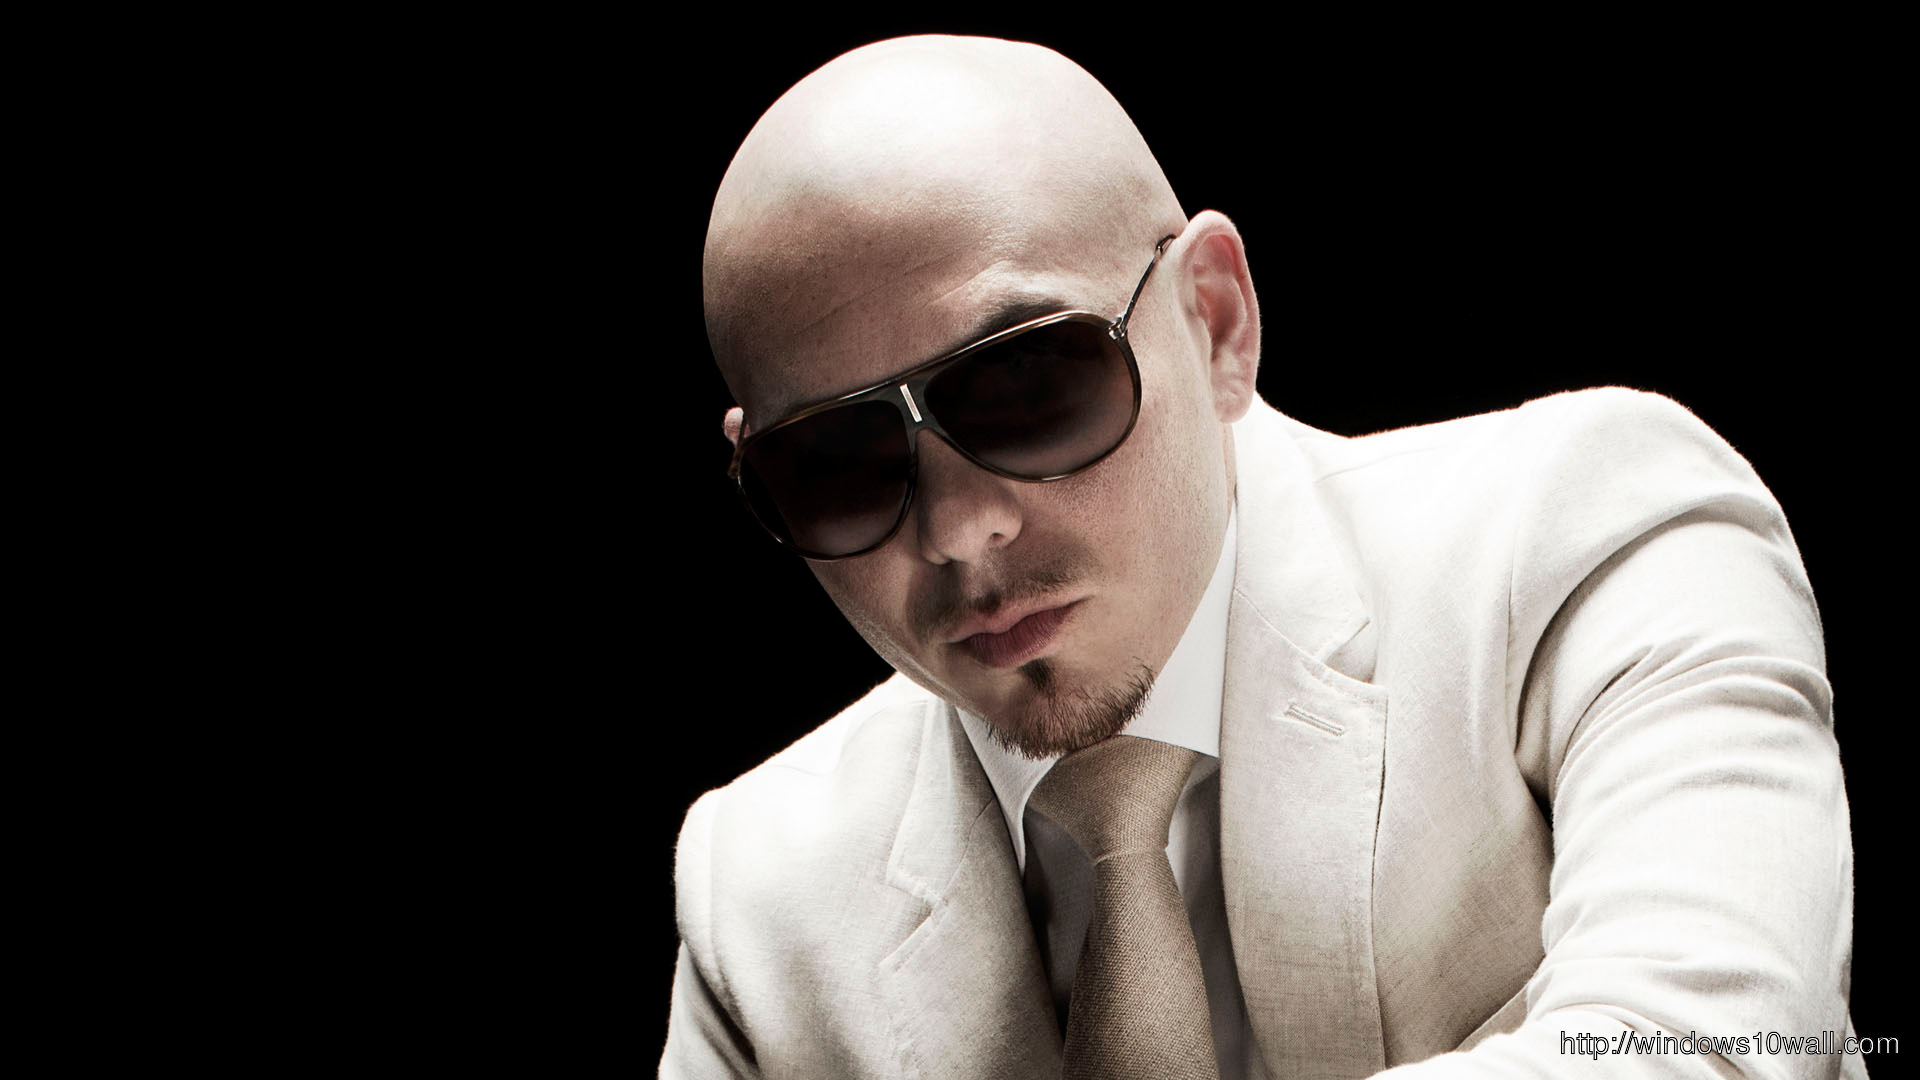 Pitbull Stylish Wallpaper